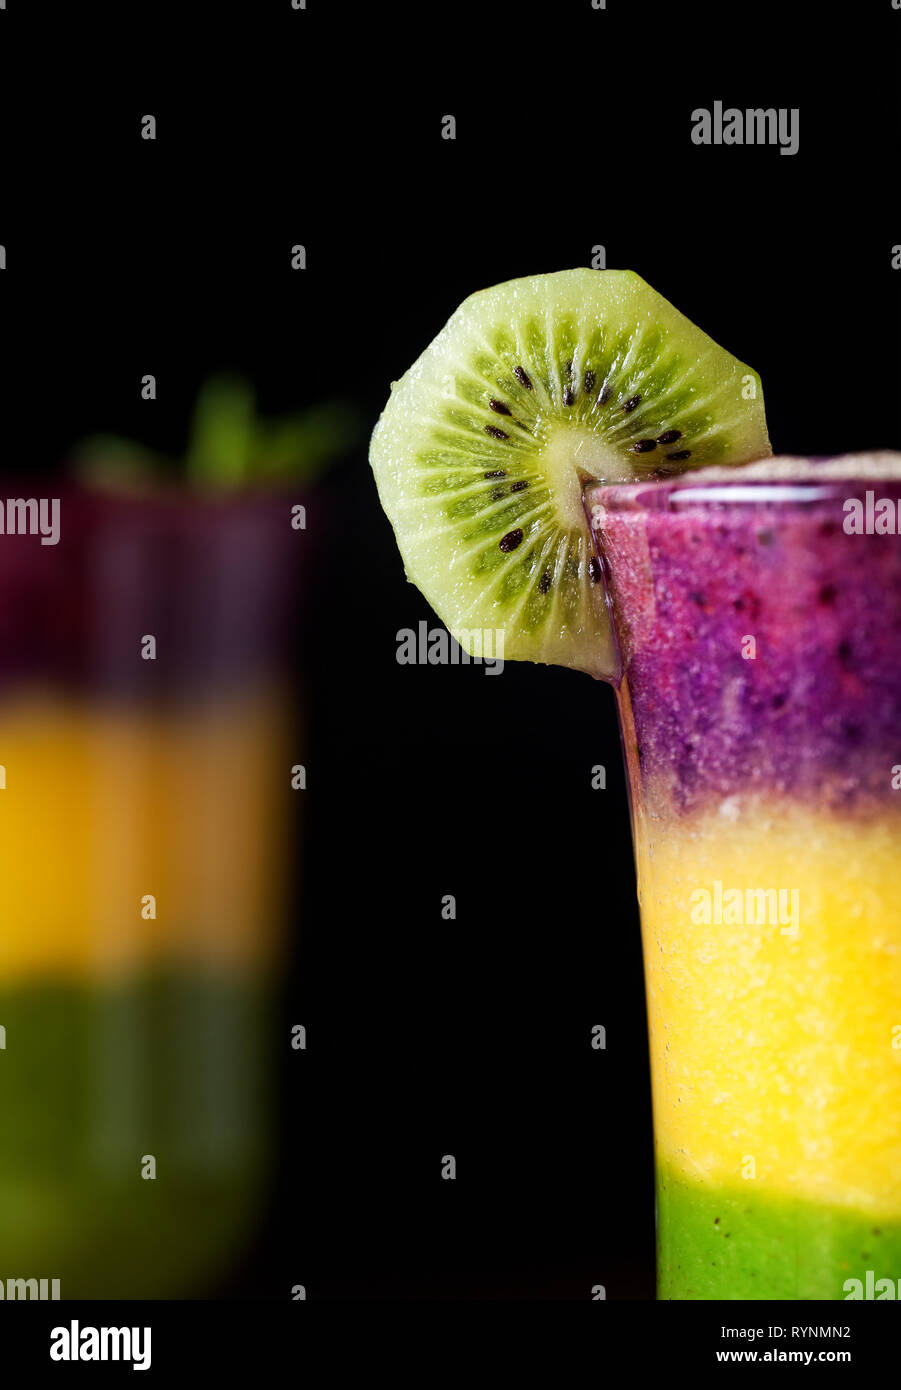 Two glass of smoothie with colorful layers from kiwi, oranges and blackberry on black background close up - Stock Image